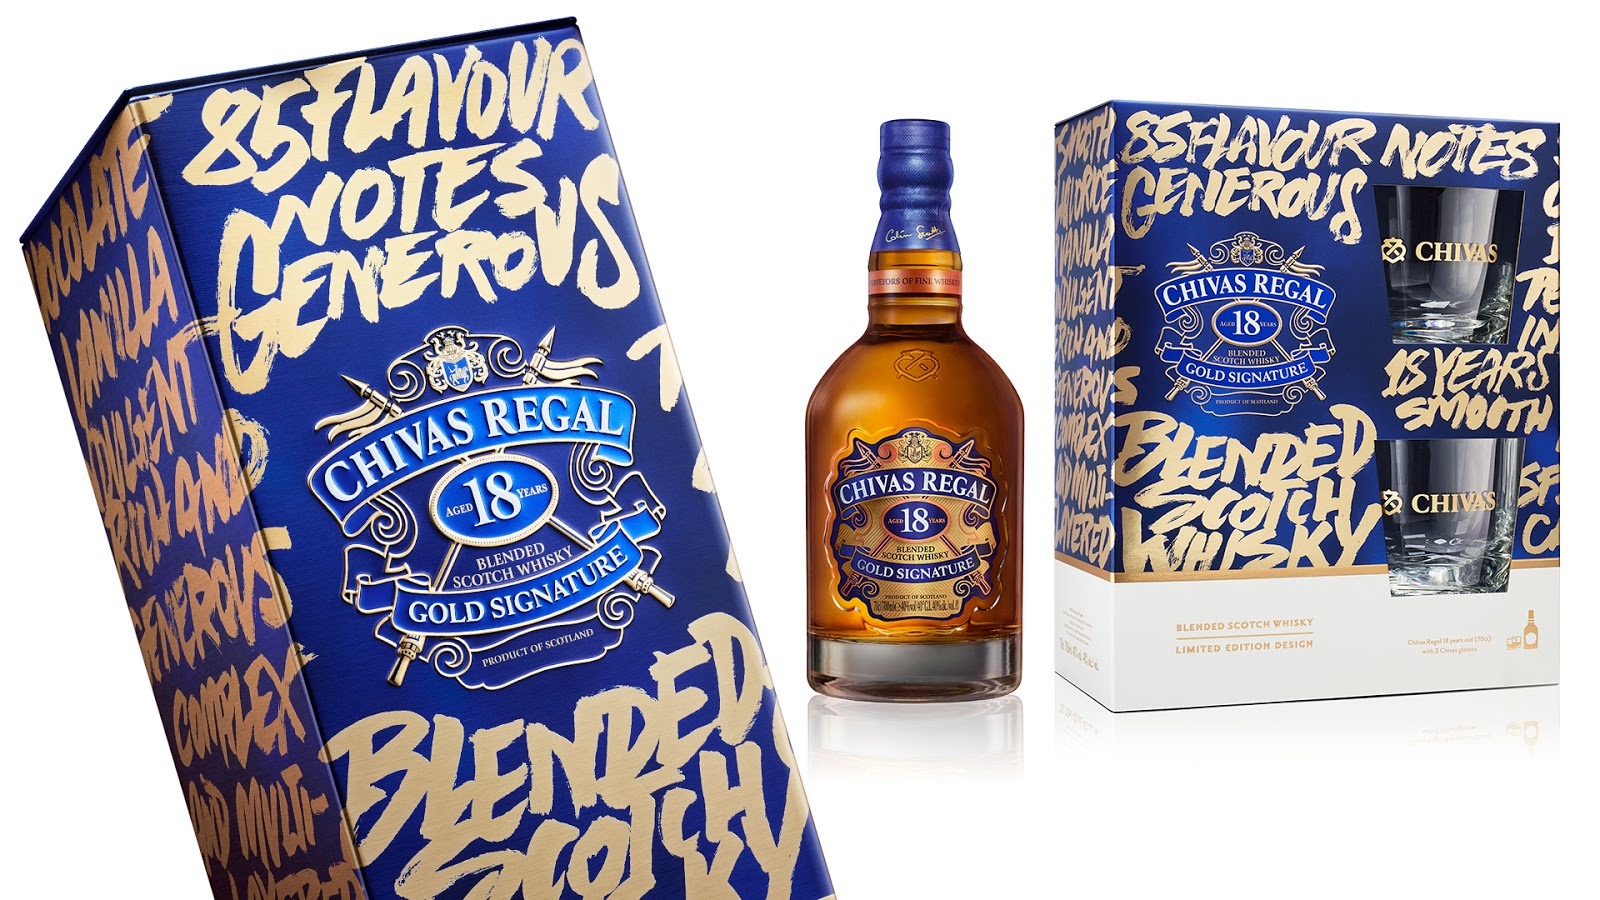 Chivas Regal Limited Edition Blended Scotch Whisky Gift